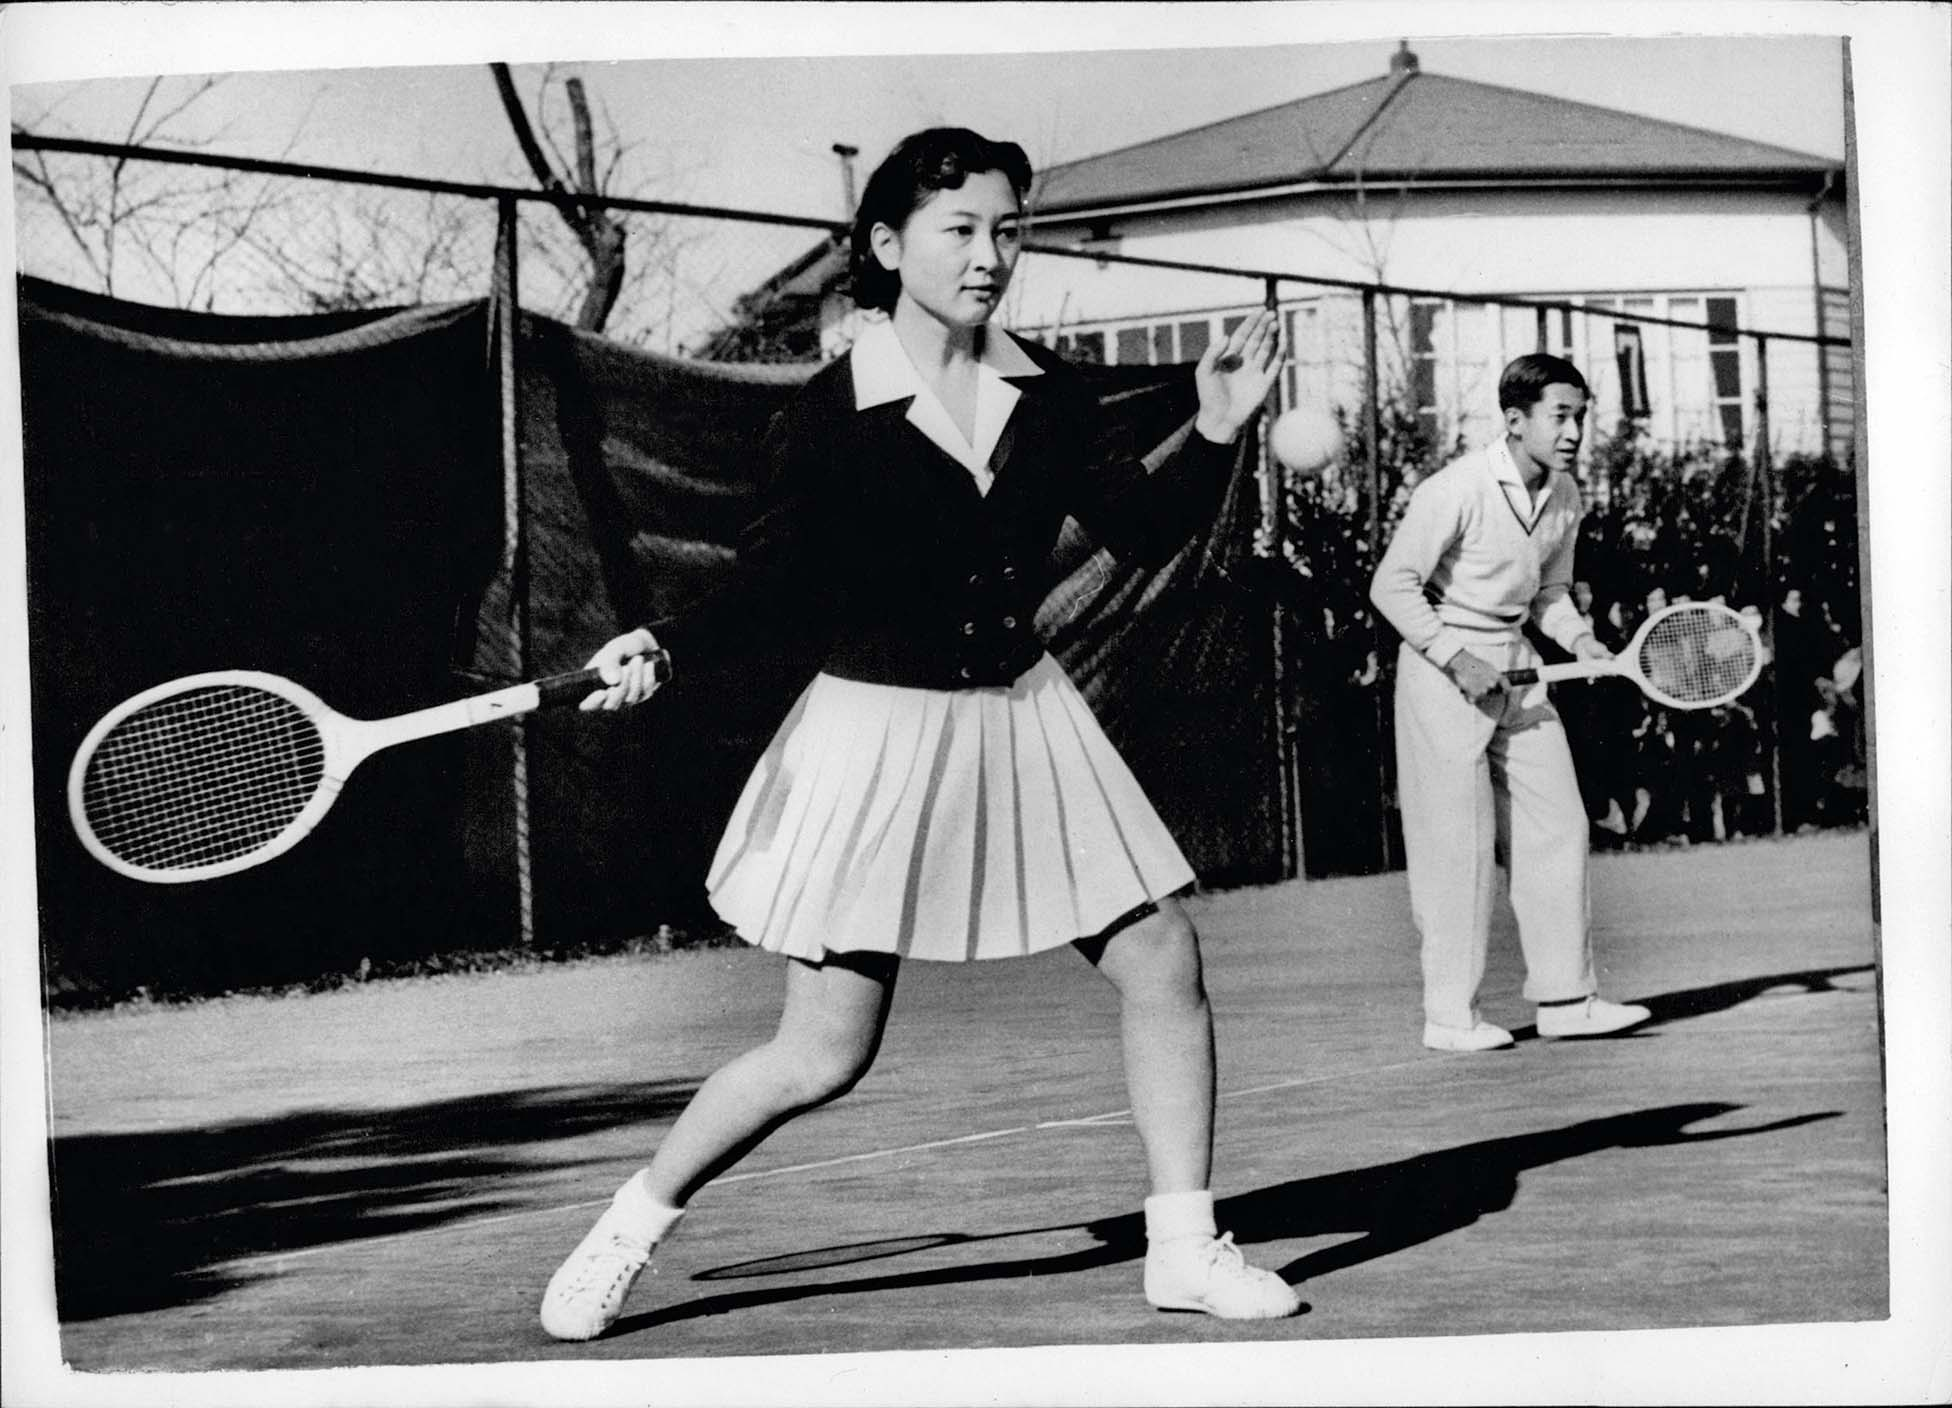 Dec. 12, 1958 - Crown Prince Akihito and Fiancee play Tennis. Crown Prince Akihito of Japan, and his fiancee, Miss Michiko Shoda, partnered each other at tennis over the week-end, at the Tokyo Lawn tennis Club in Azabu, Tokyo. This was the first time they have been photographed together since the announcement of their engagement. Photo shows Crown Prince Akihito and his fiancee, Miss Michiko Shoda, in play when they partnered each other at tennis in Azabu, Tokyo., Image: 210028194, License: Rights-managed, Restrictions: , Model Release: no, Credit line: Profimedia, Zuma Press - Archives